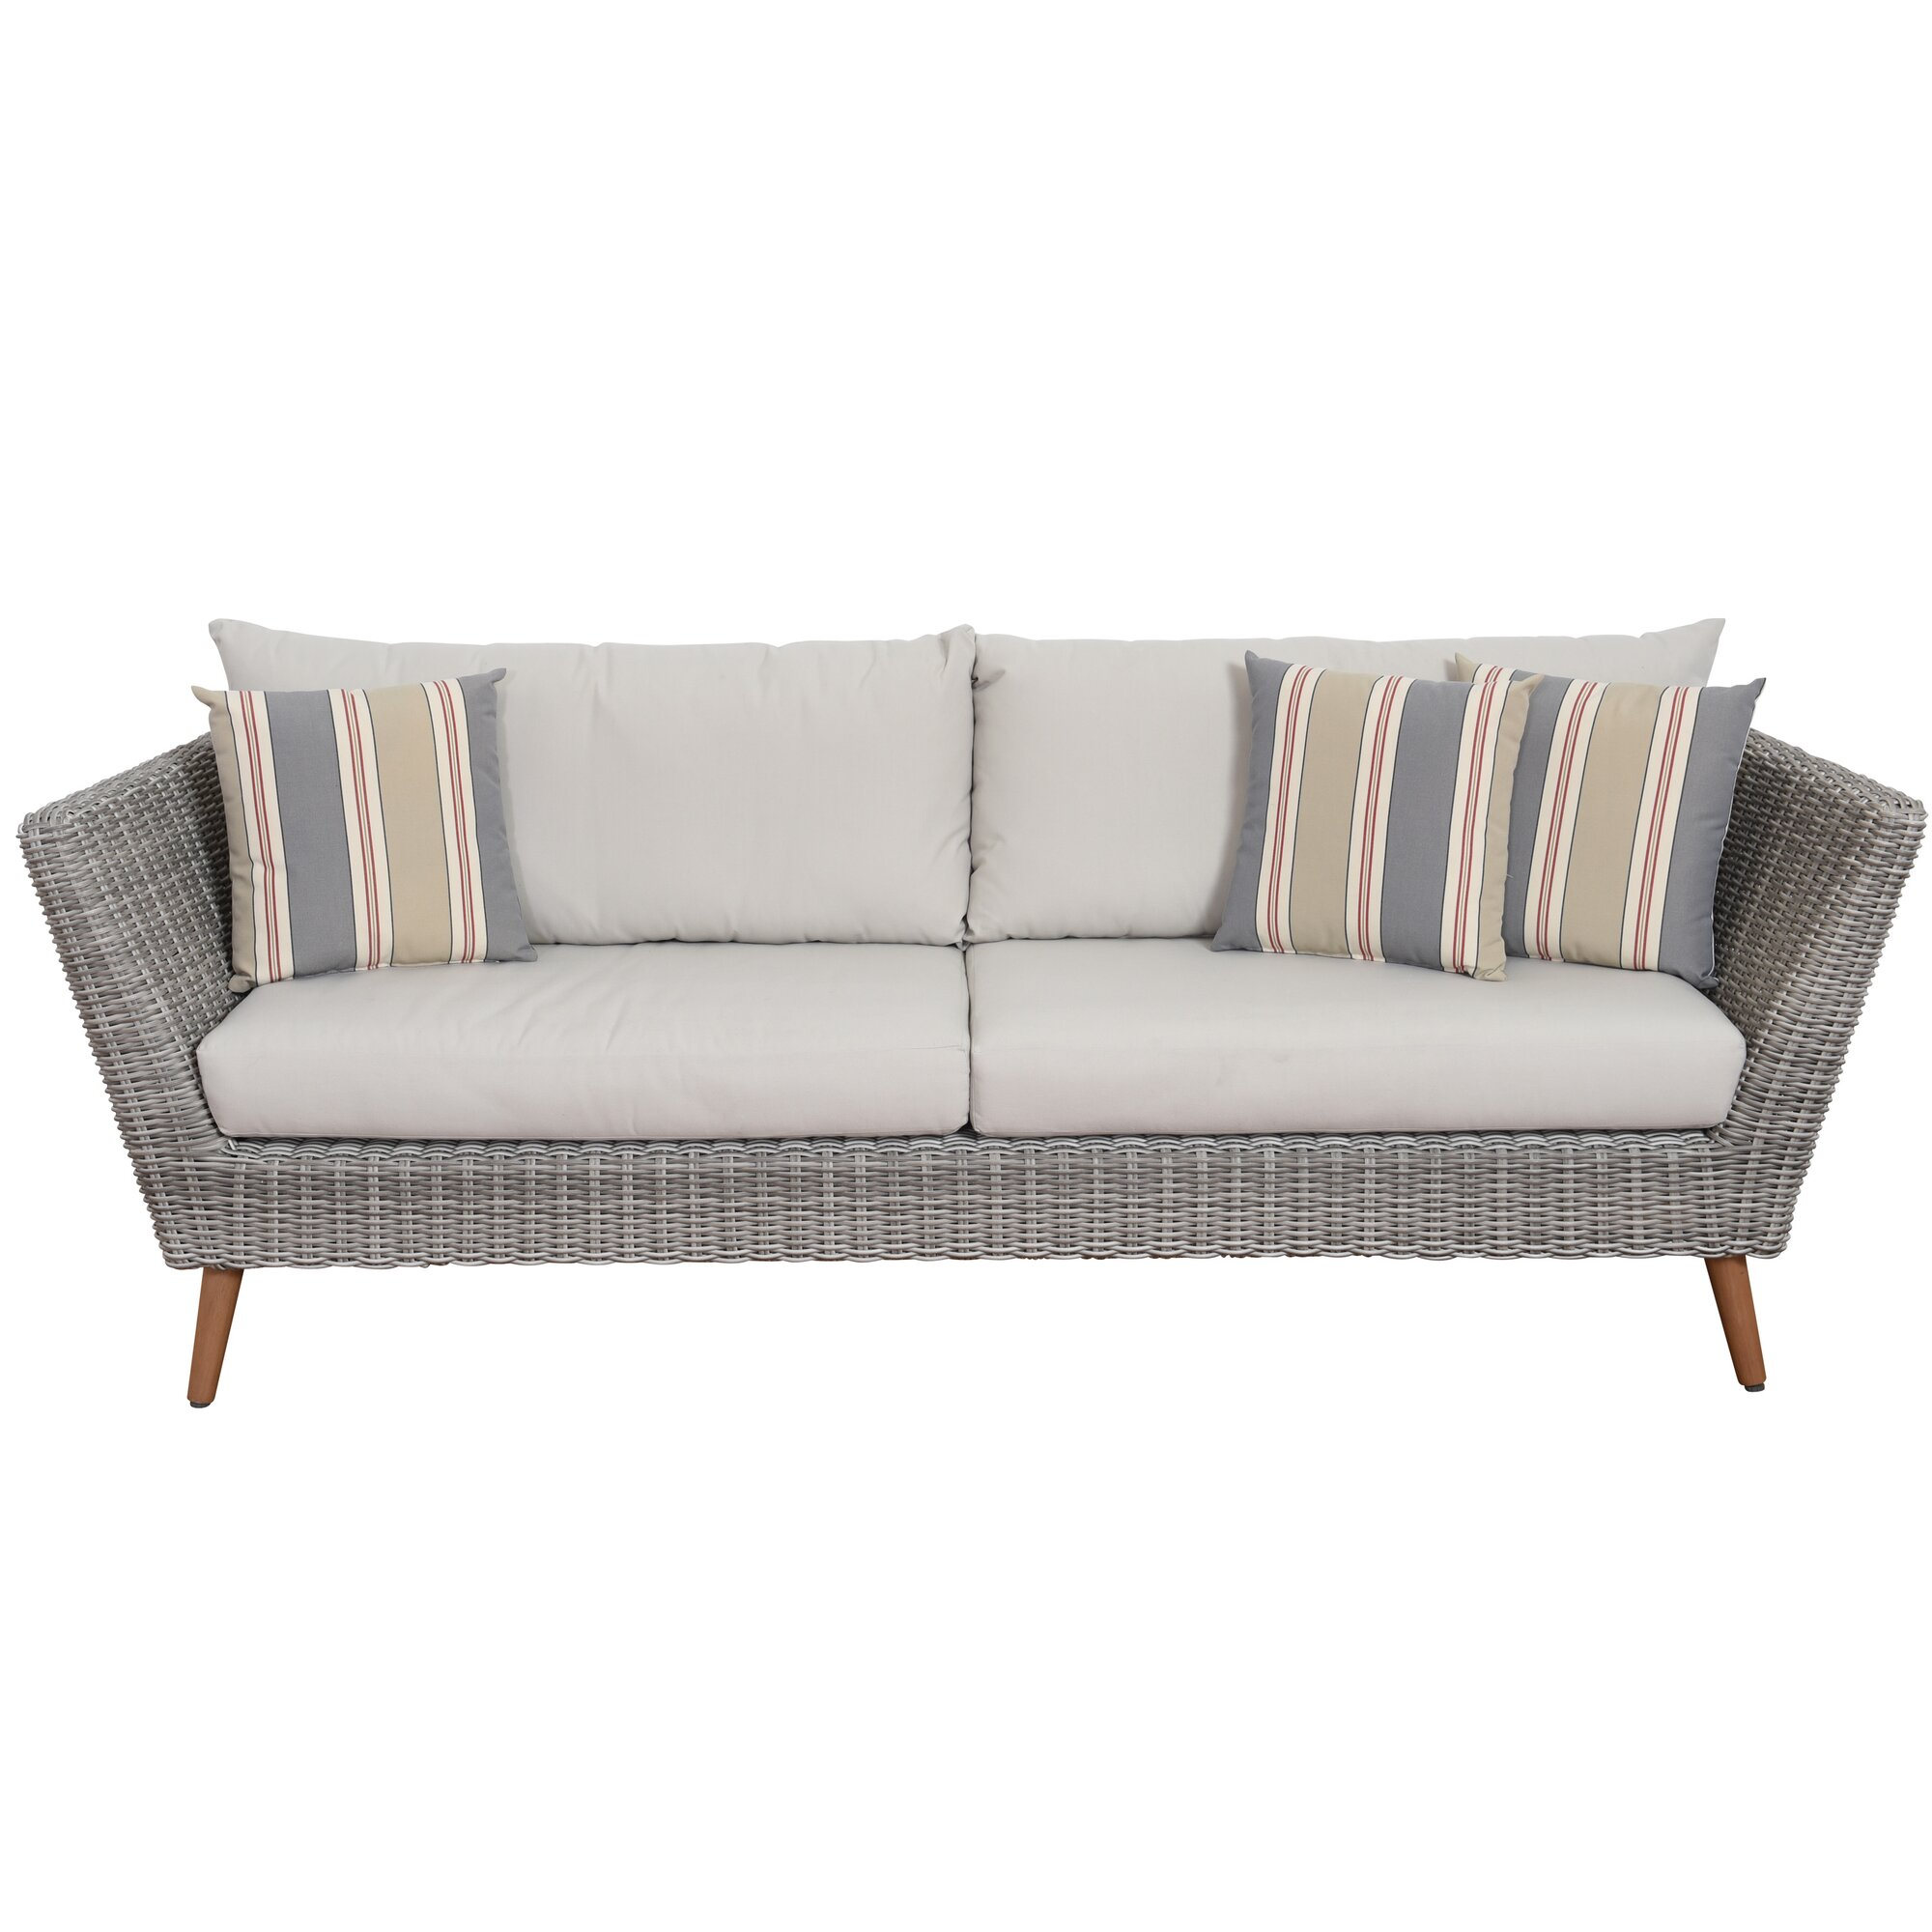 Newbury patio sofa with cushions reviews allmodern for Outdoor furniture langley